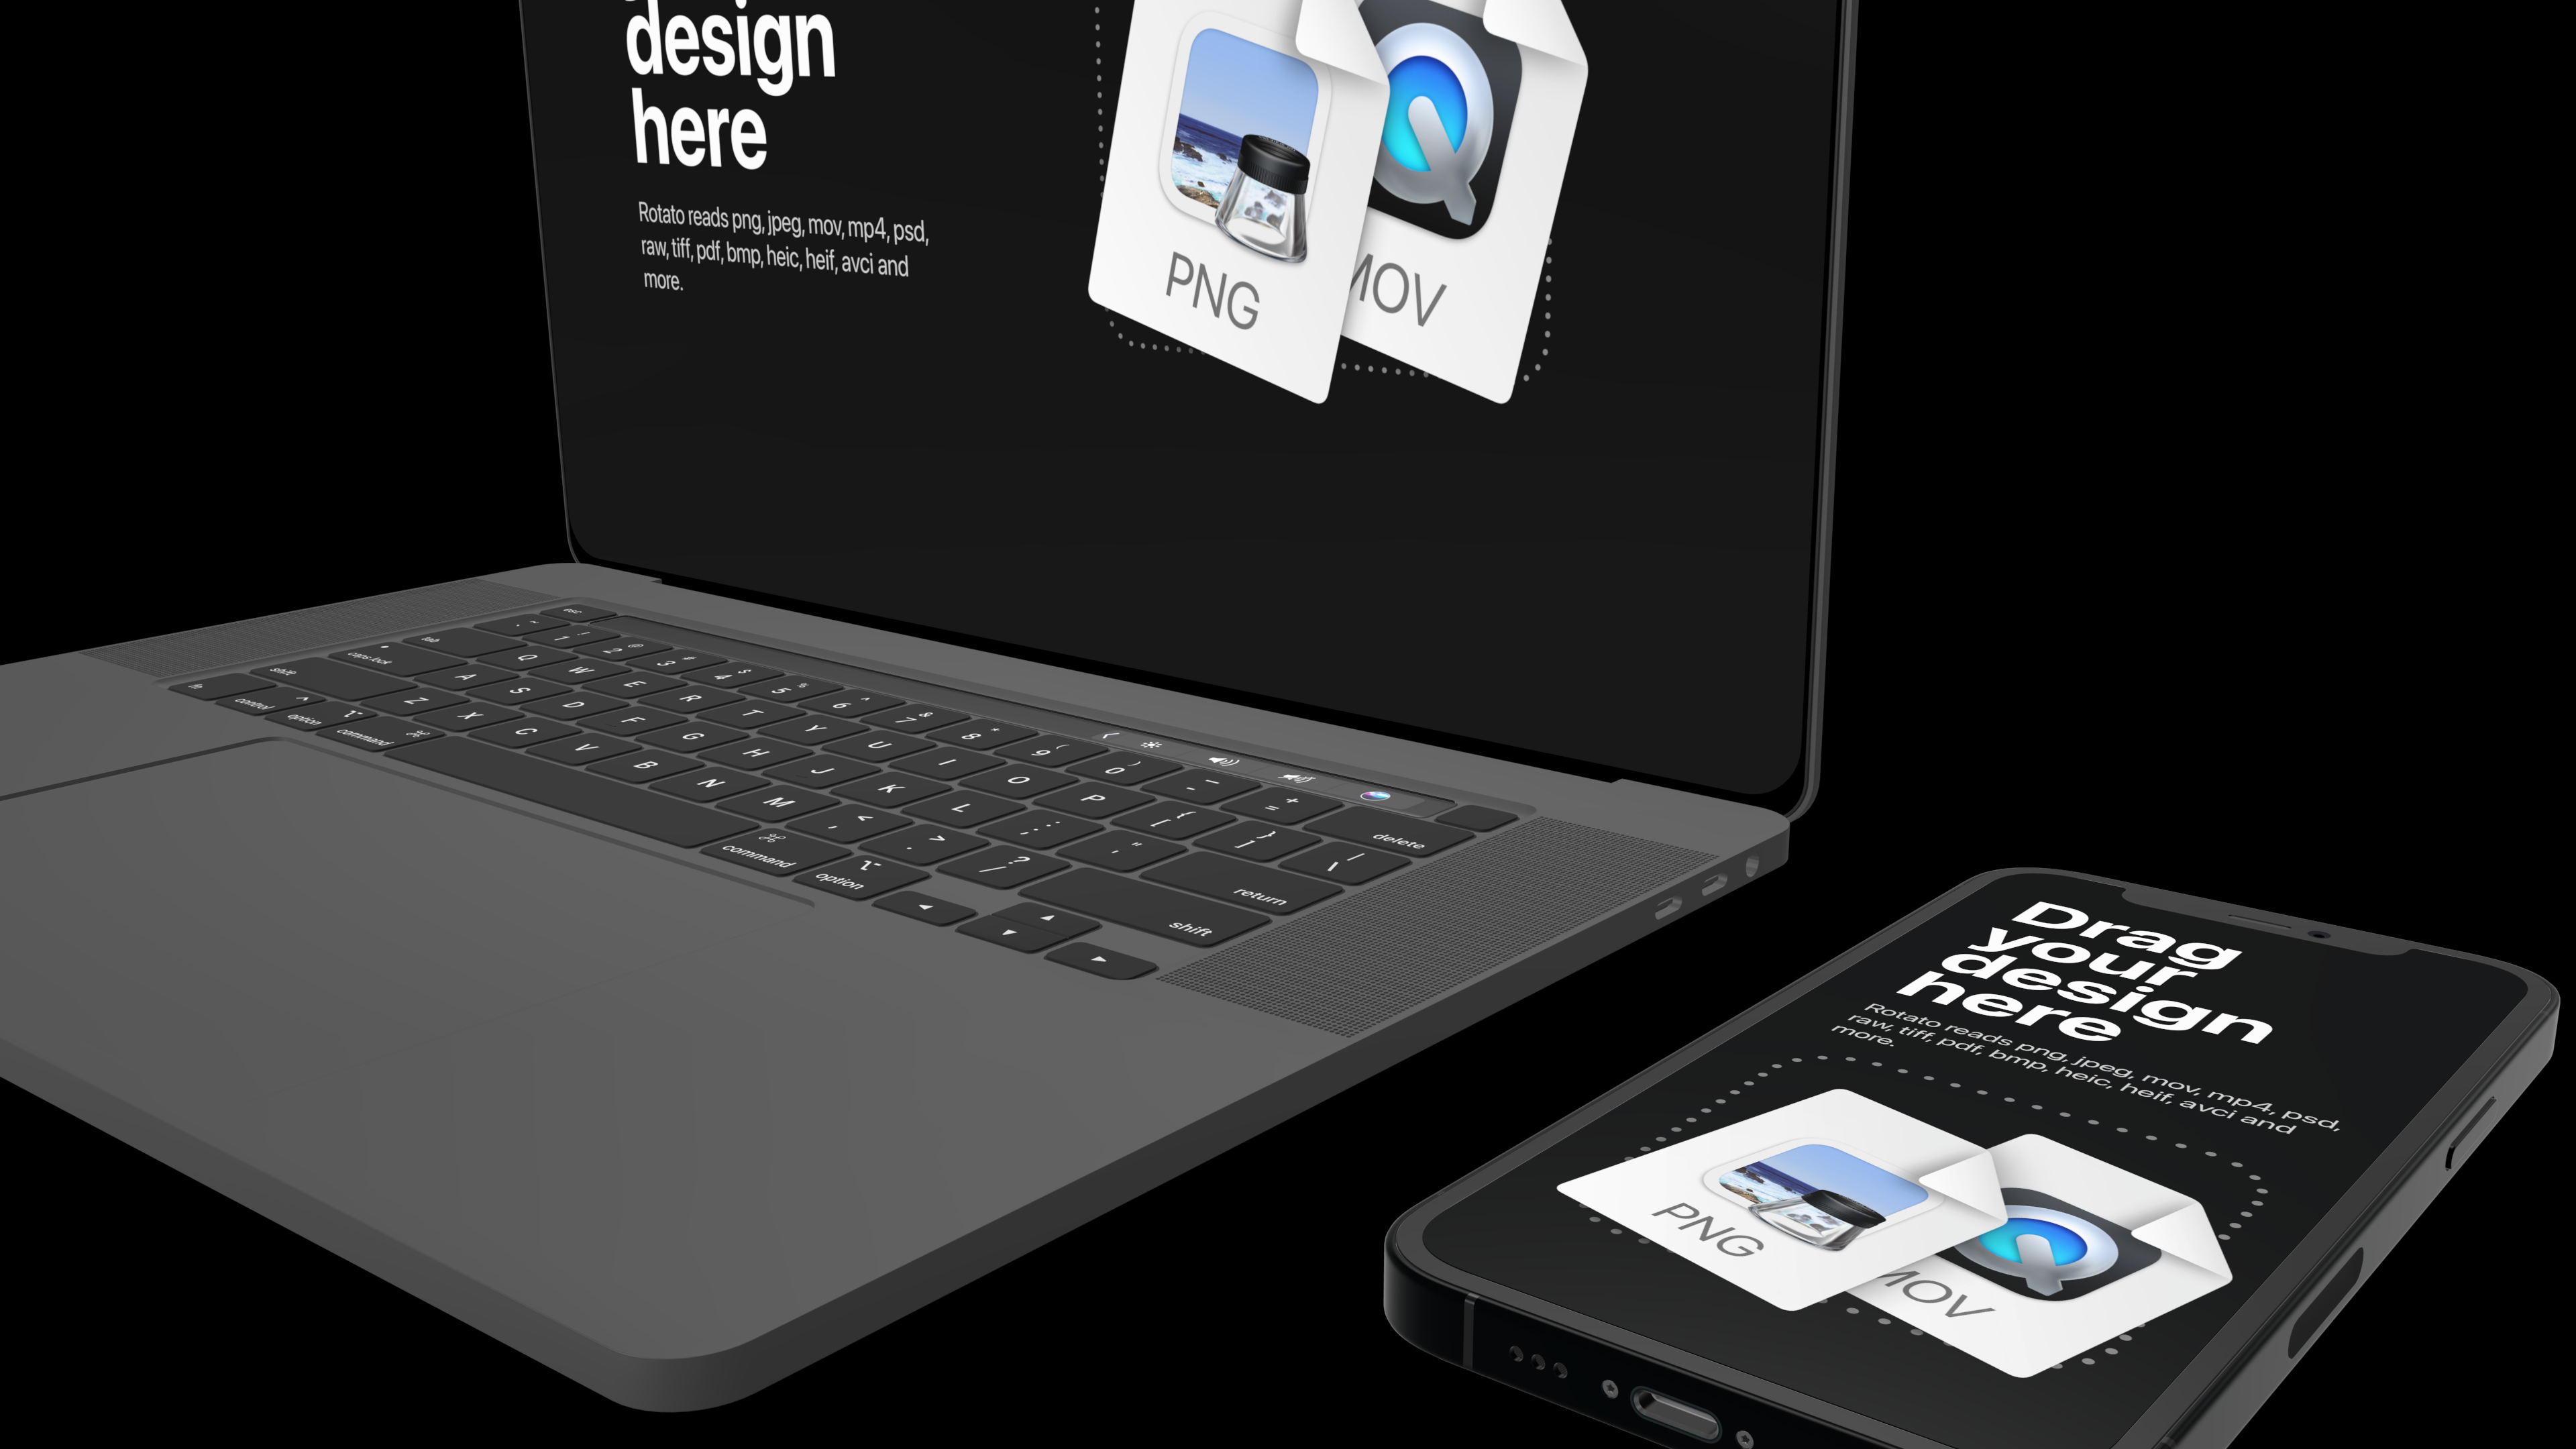 Phone and laptop mockup on a black background